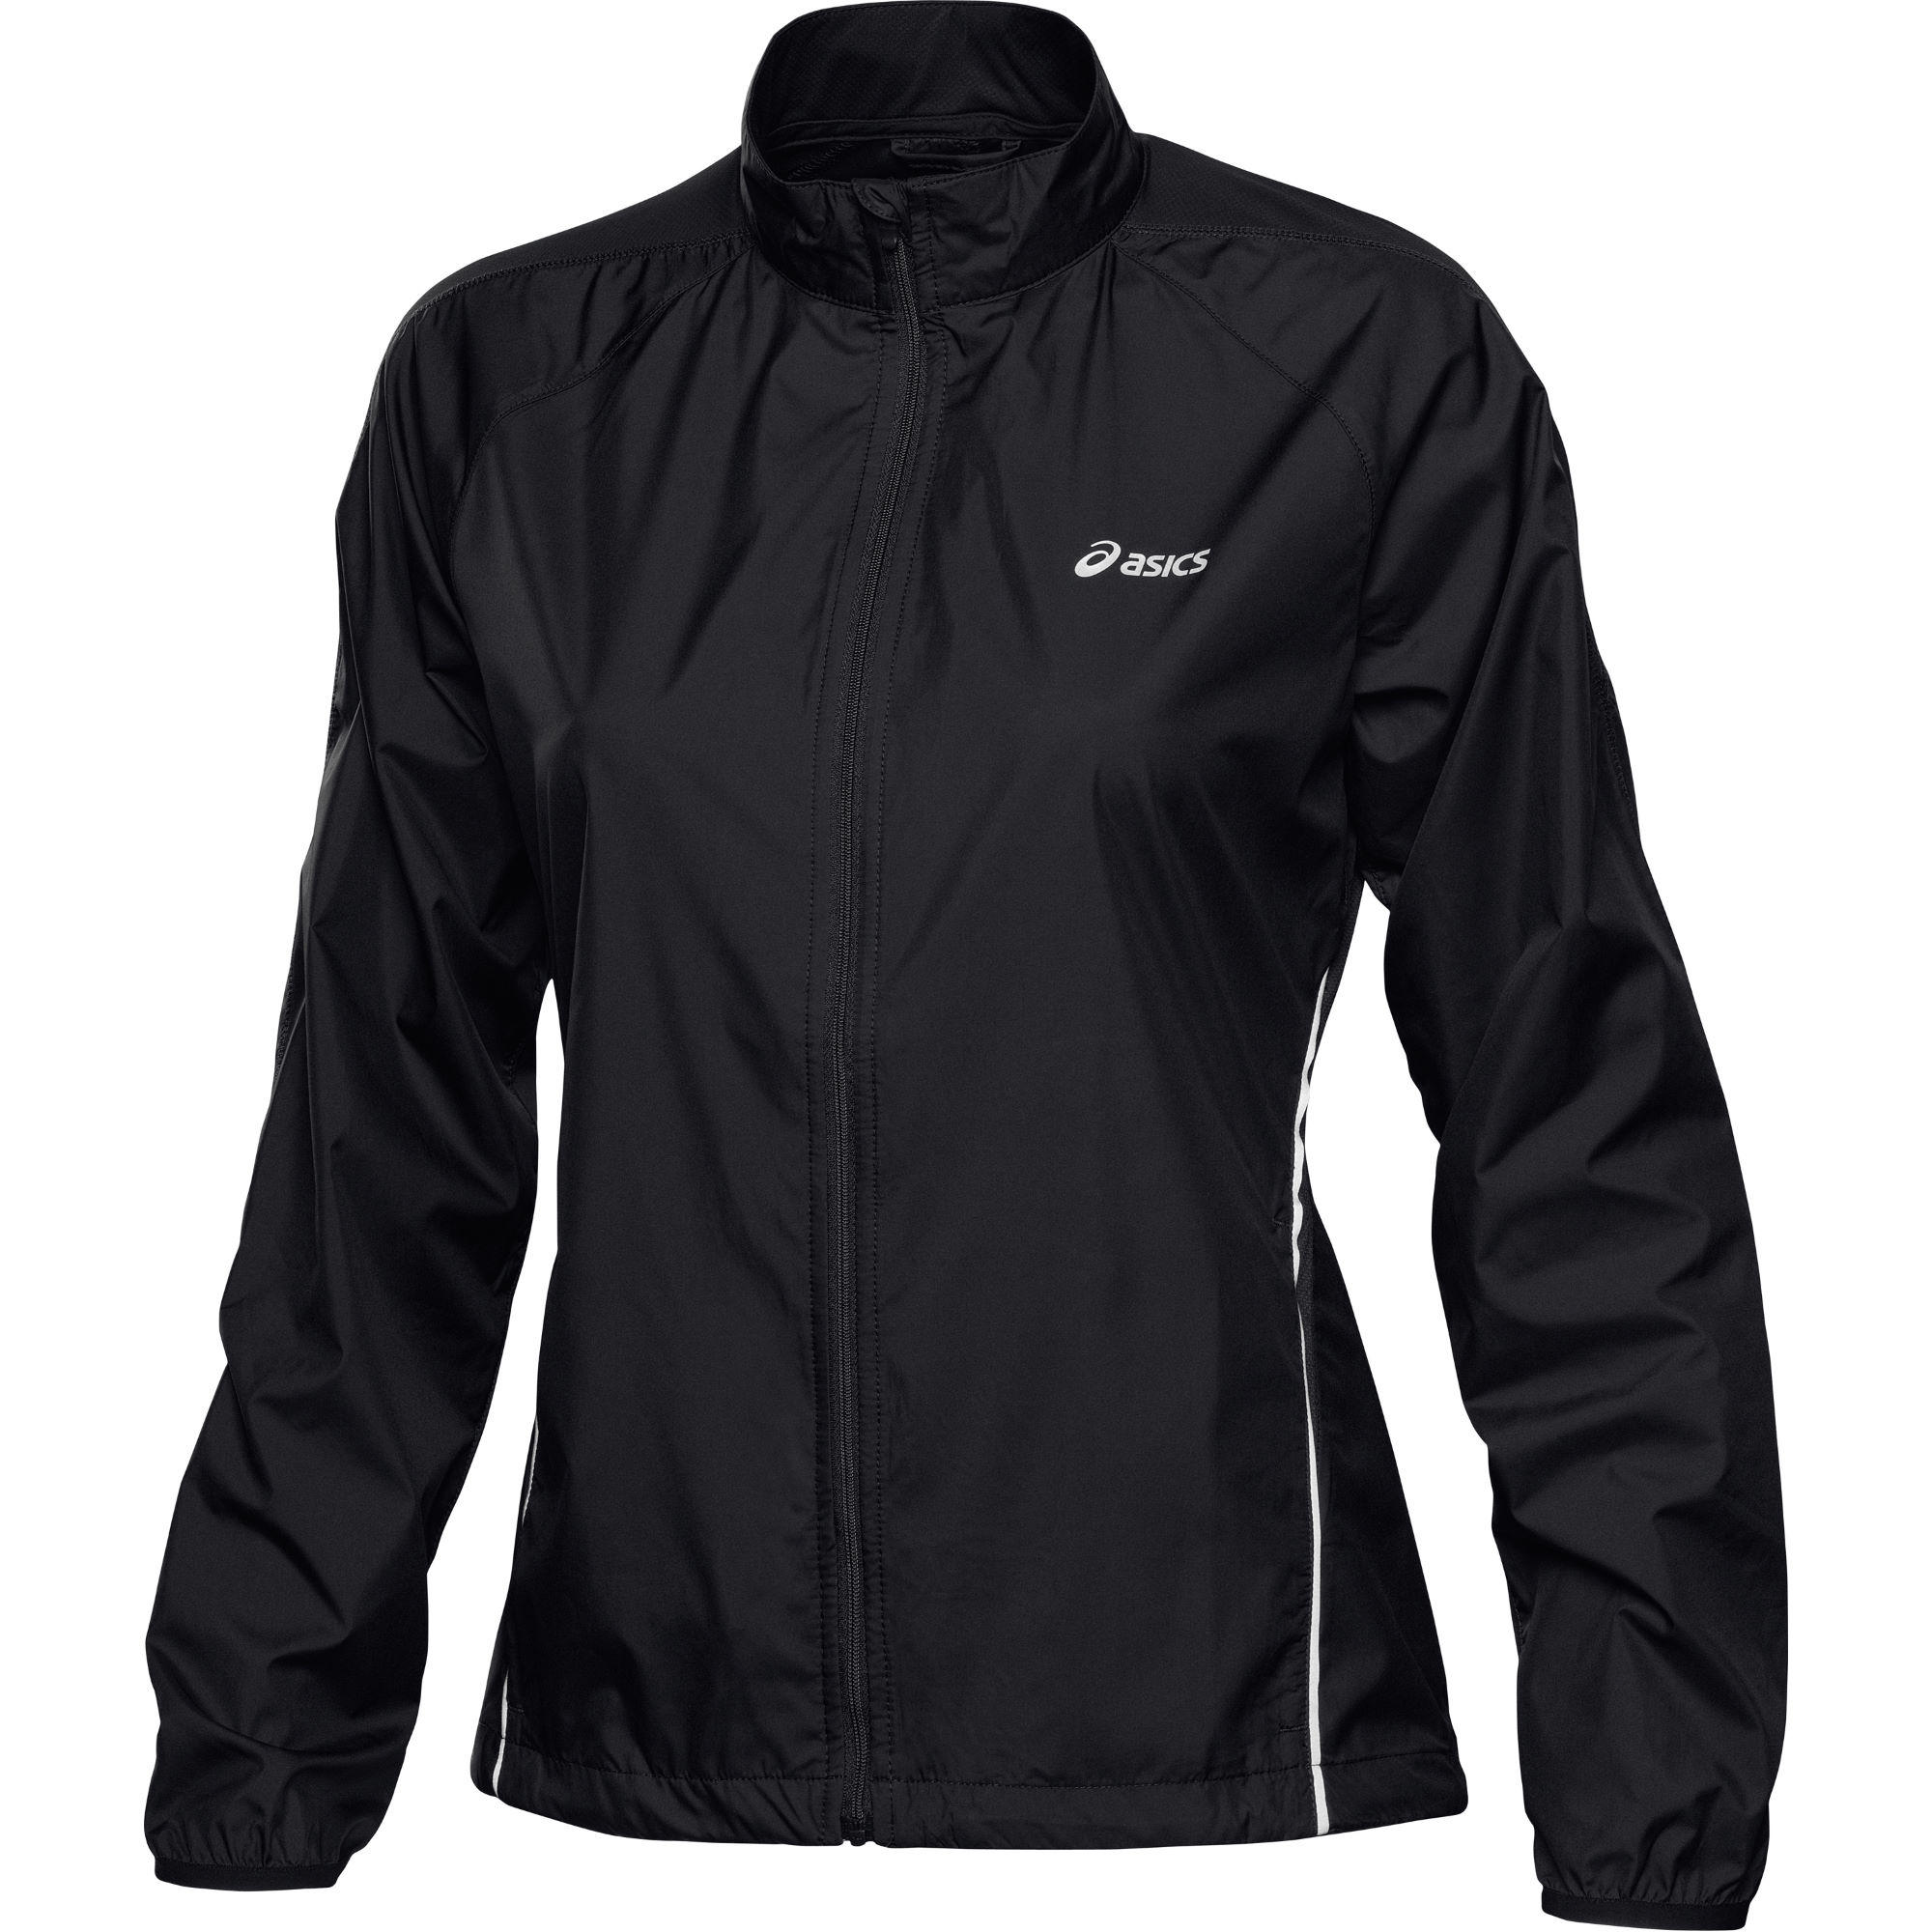 vestes de running coupe vent asics women 39 s vesta jacket aw13 wiggle france. Black Bedroom Furniture Sets. Home Design Ideas